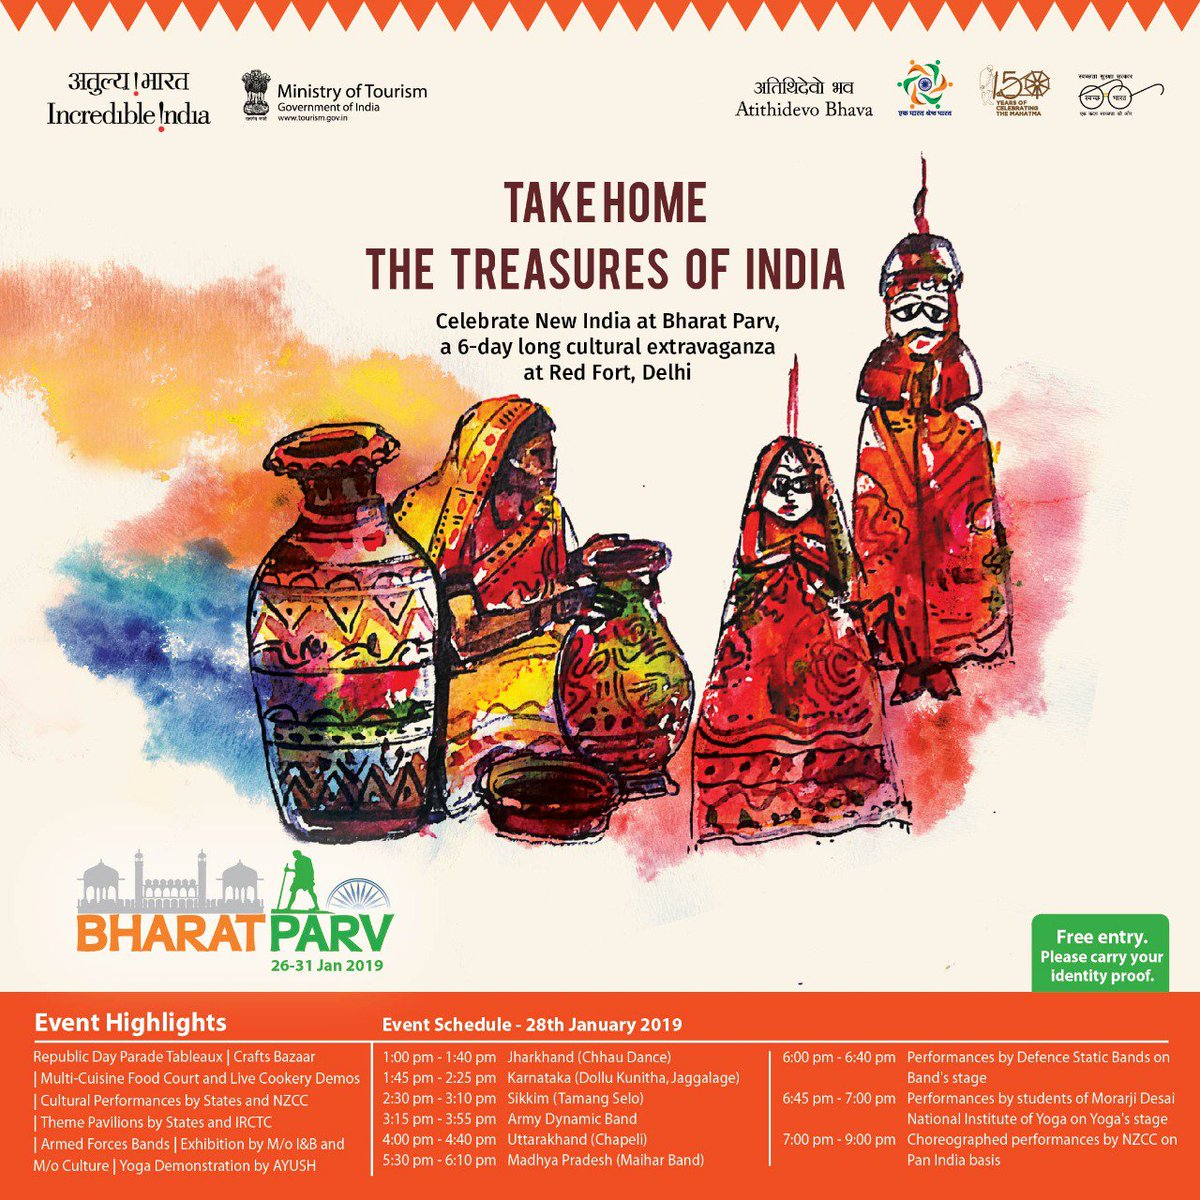 Get up-close with the cultural riches of India at the #BharatParv crafts bazaar. This expansive mart for traditional handicrafts & collector's items from all over the country speaks volumes about how these works of art & the dexterous artisans behind them keep our heritage alive.